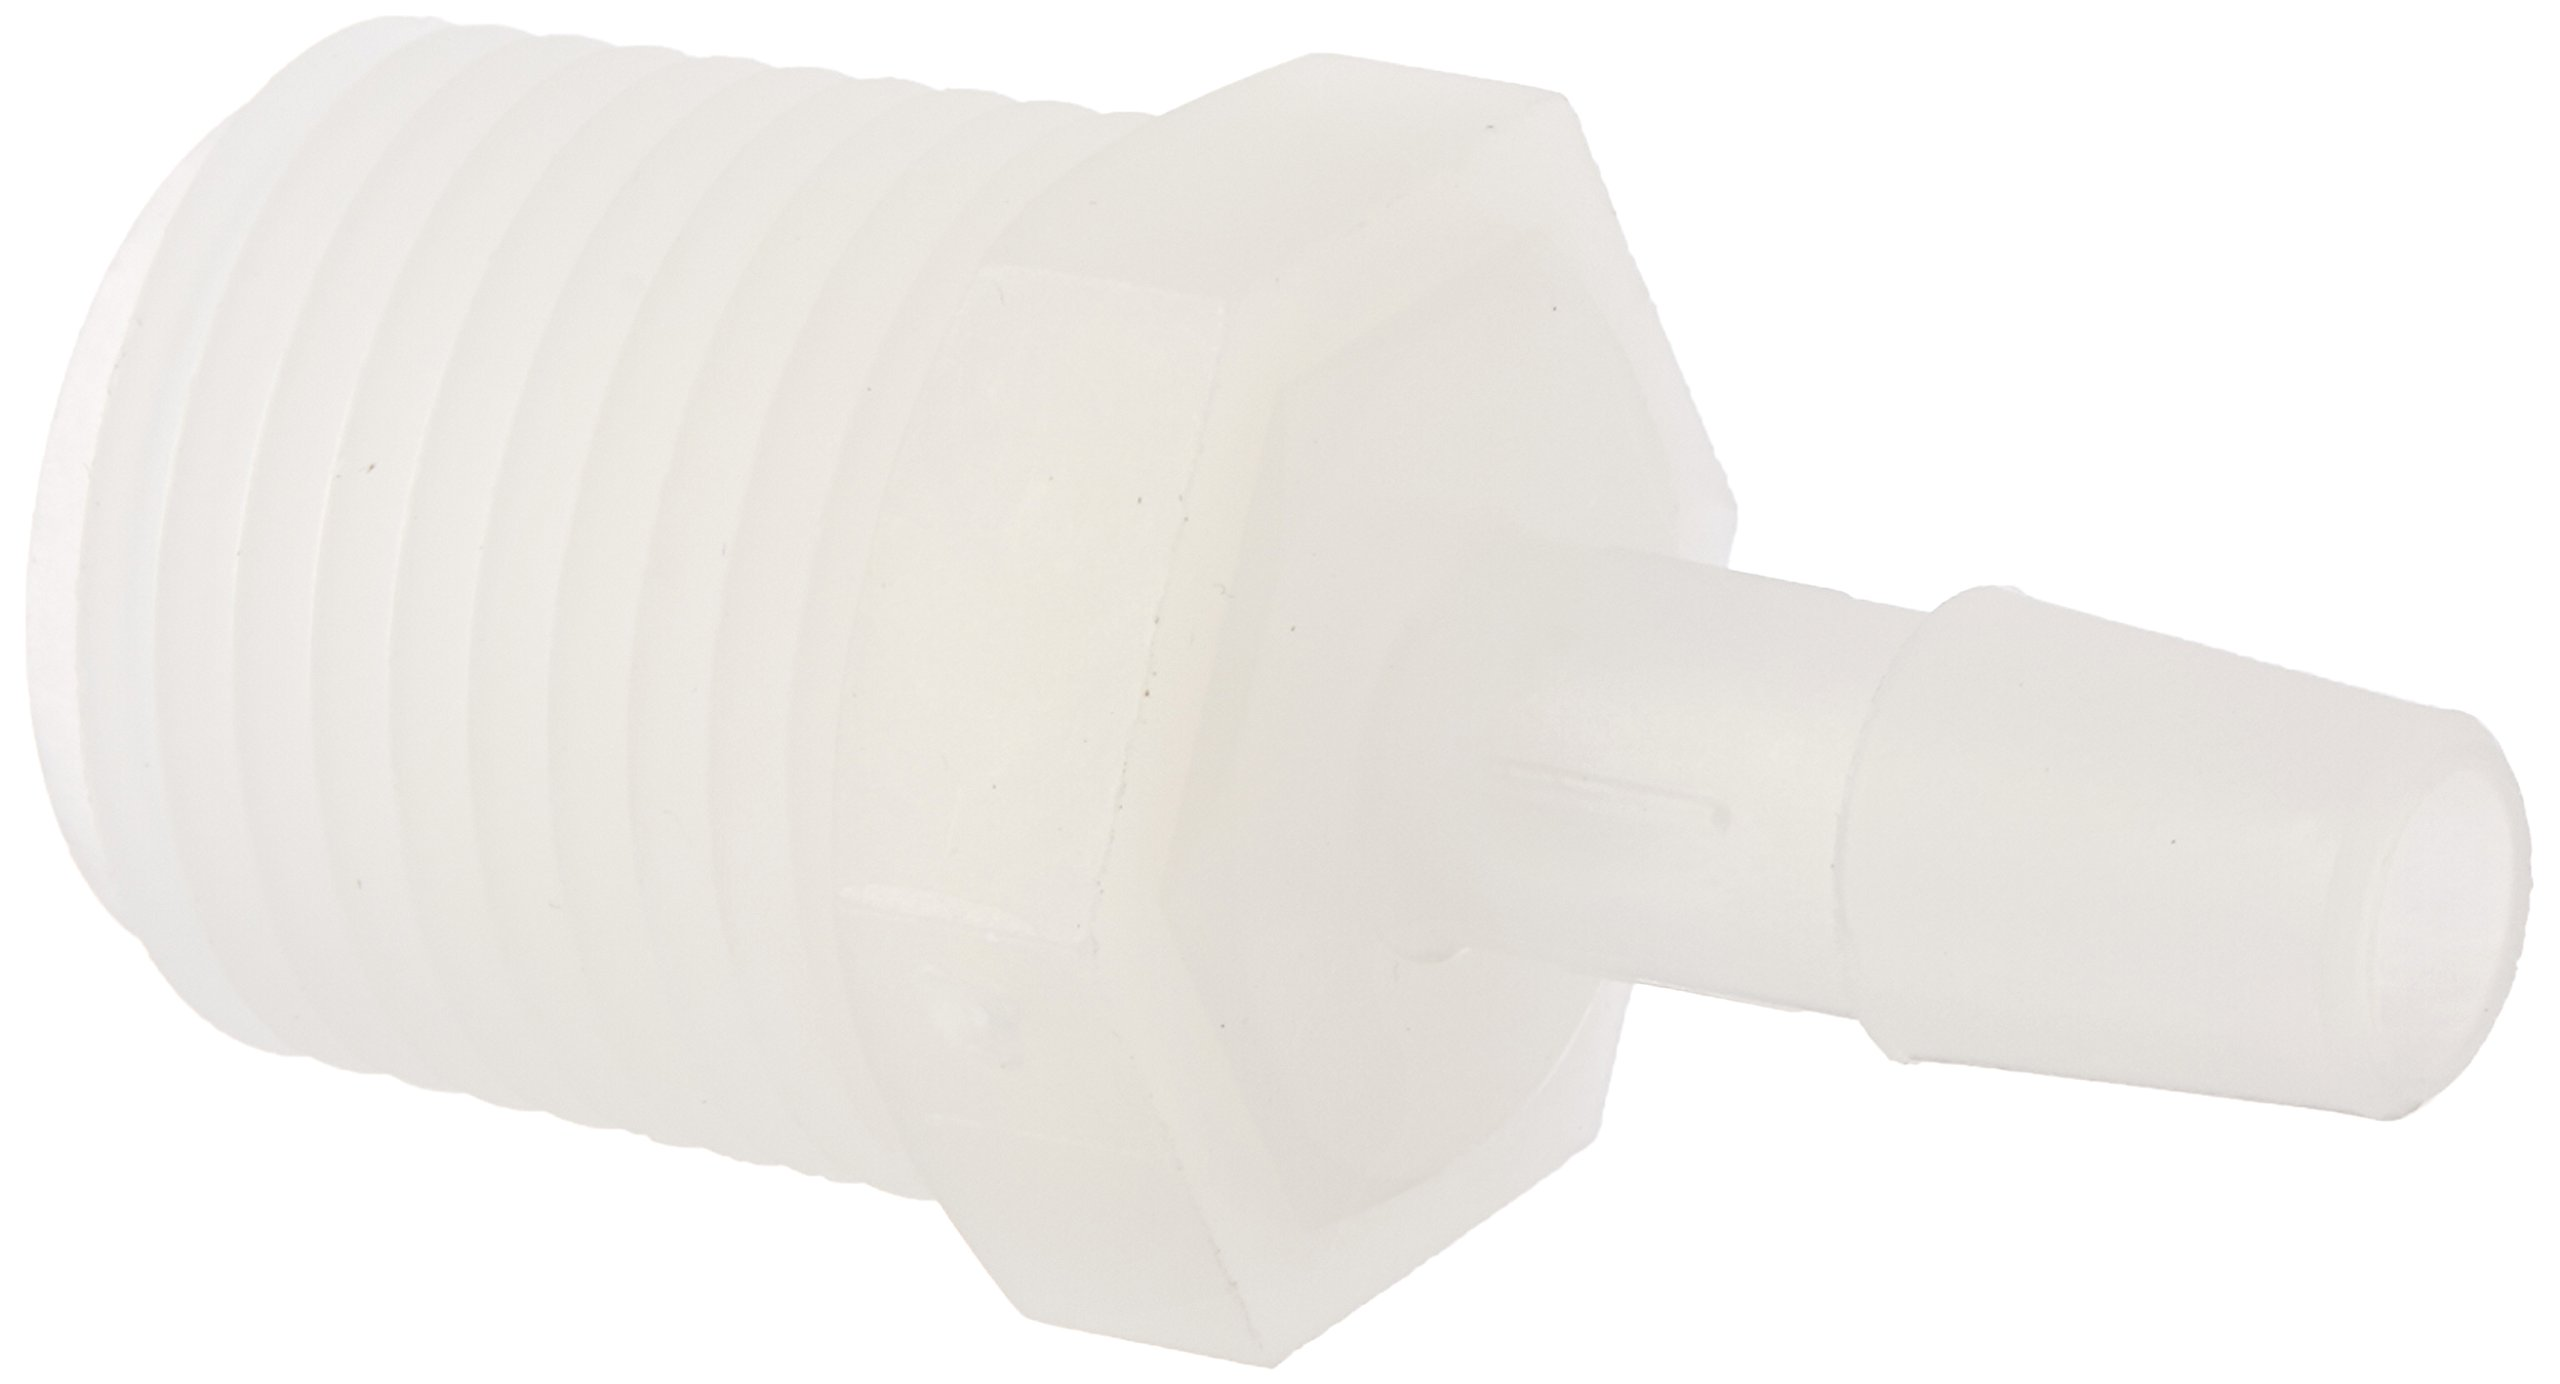 Eldon James A8-5NK Natural Kynar Adapter Fitting, 1/2-14 NPT to 5/16'' Hose Barb (Pack of 10)